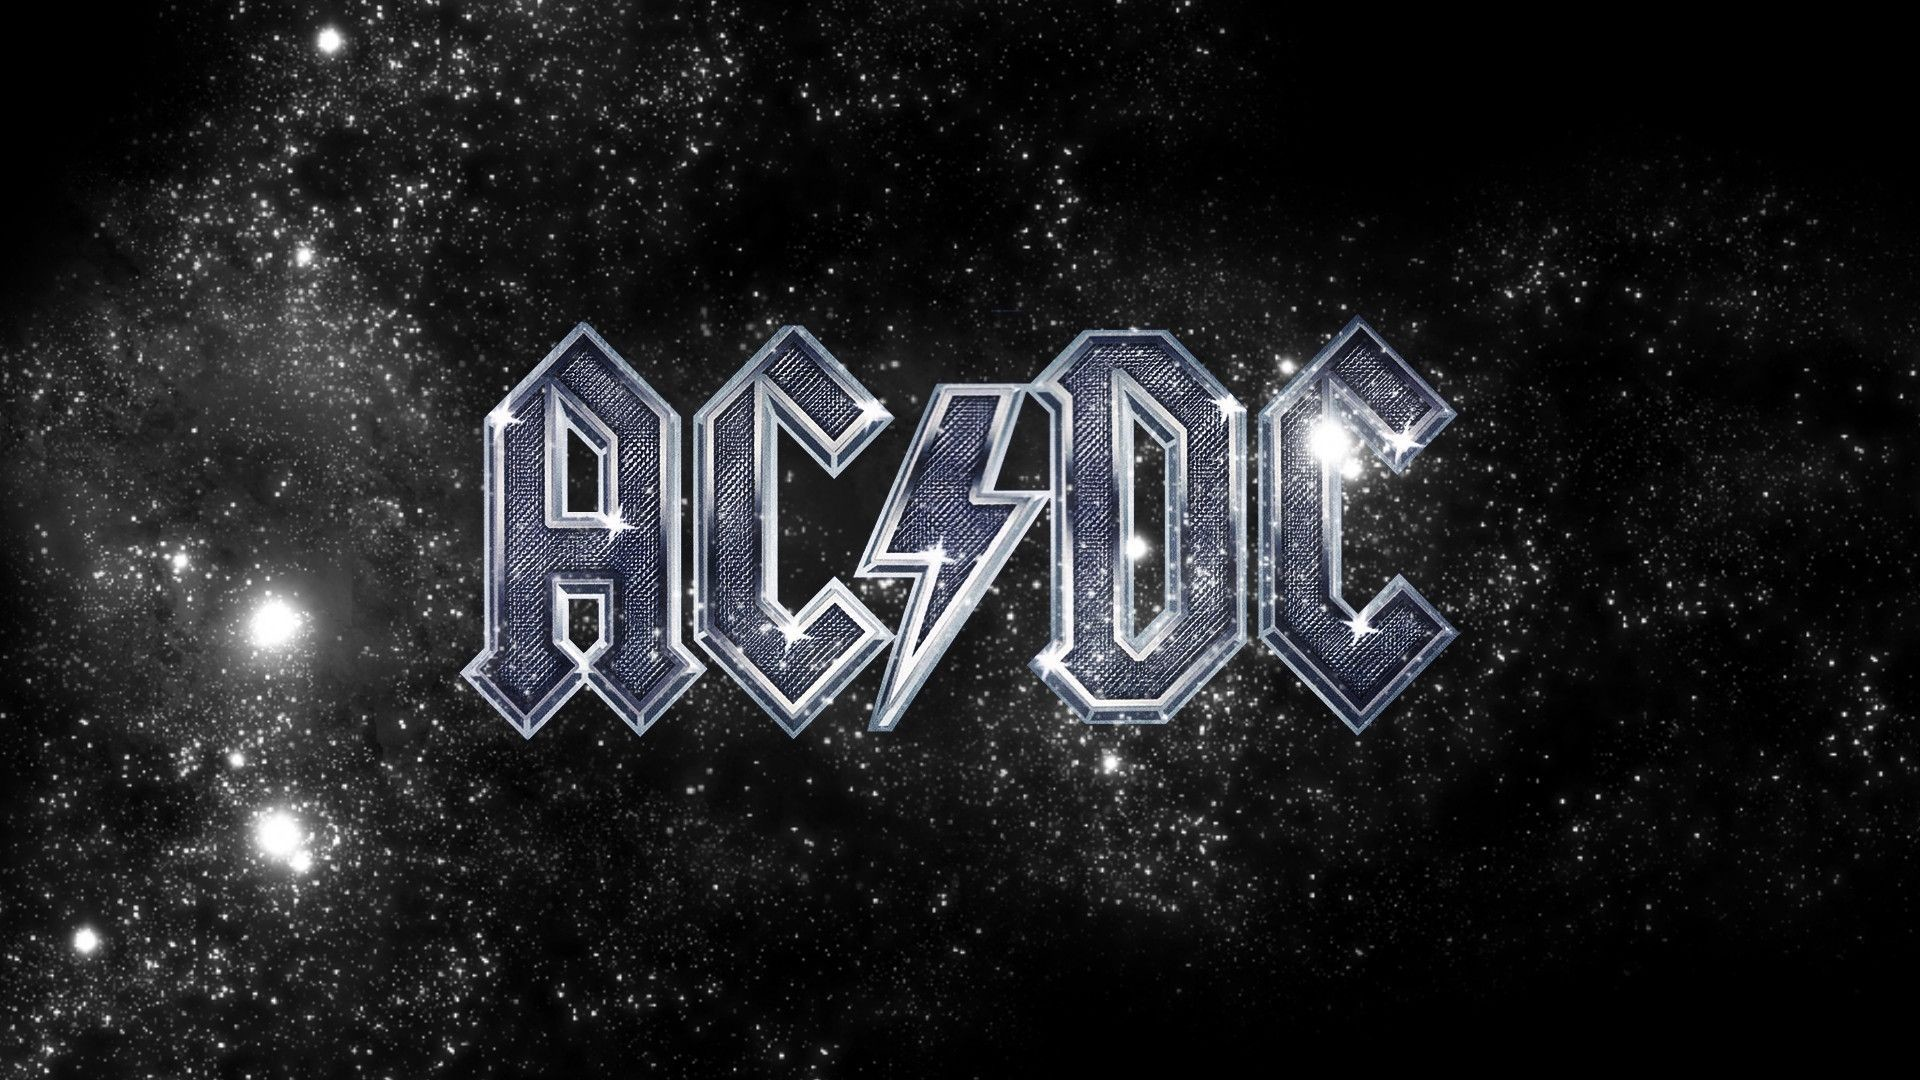 HDQ Cover Wallpapers: AC DC Wallpapers Free, AC DC Photos For